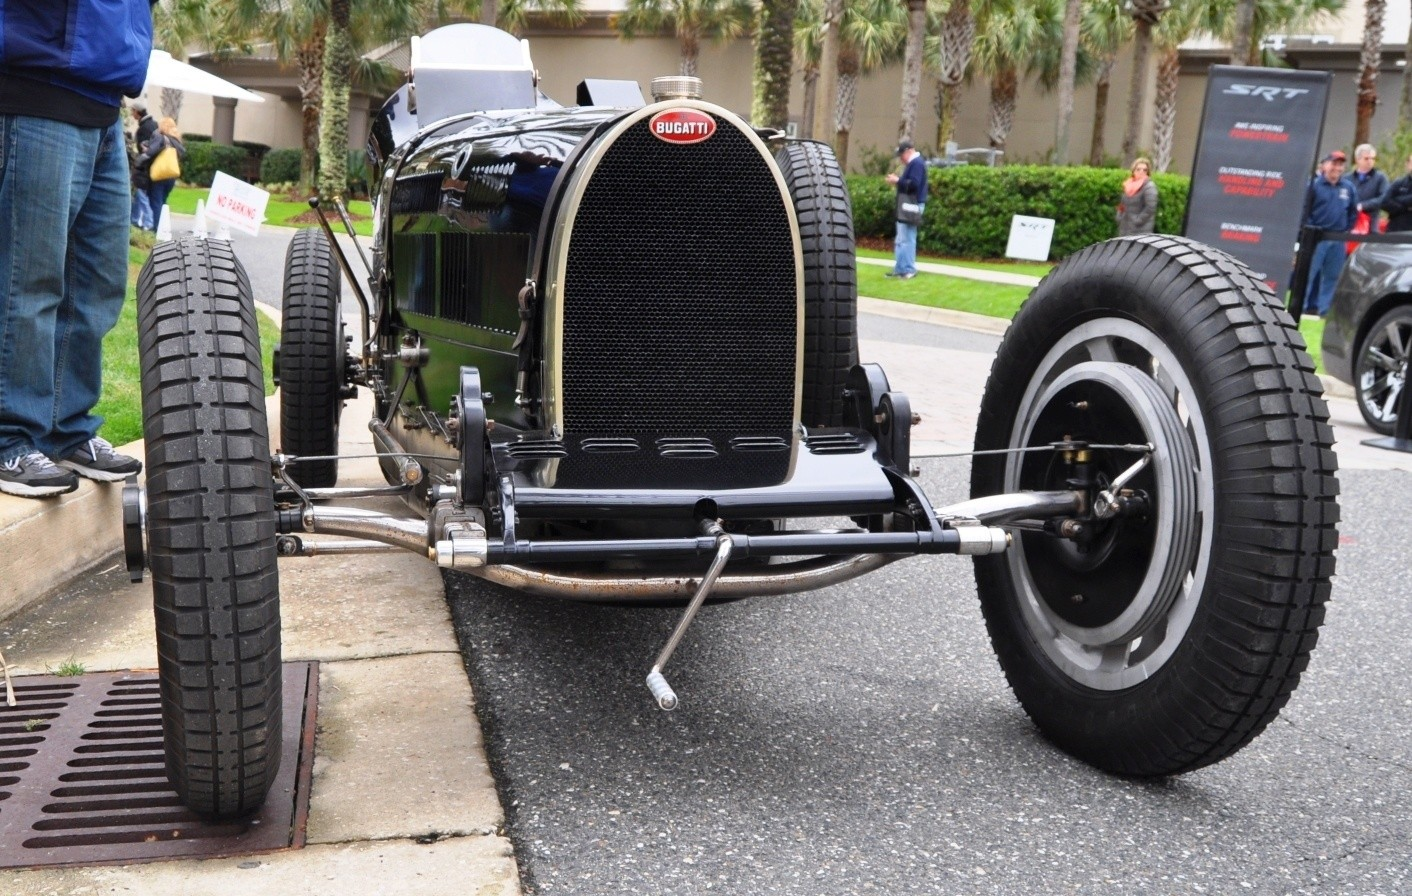 PurSang Argentina Shows Innovative Marketing with Street-Parked 1920s Bugatti GP Car1